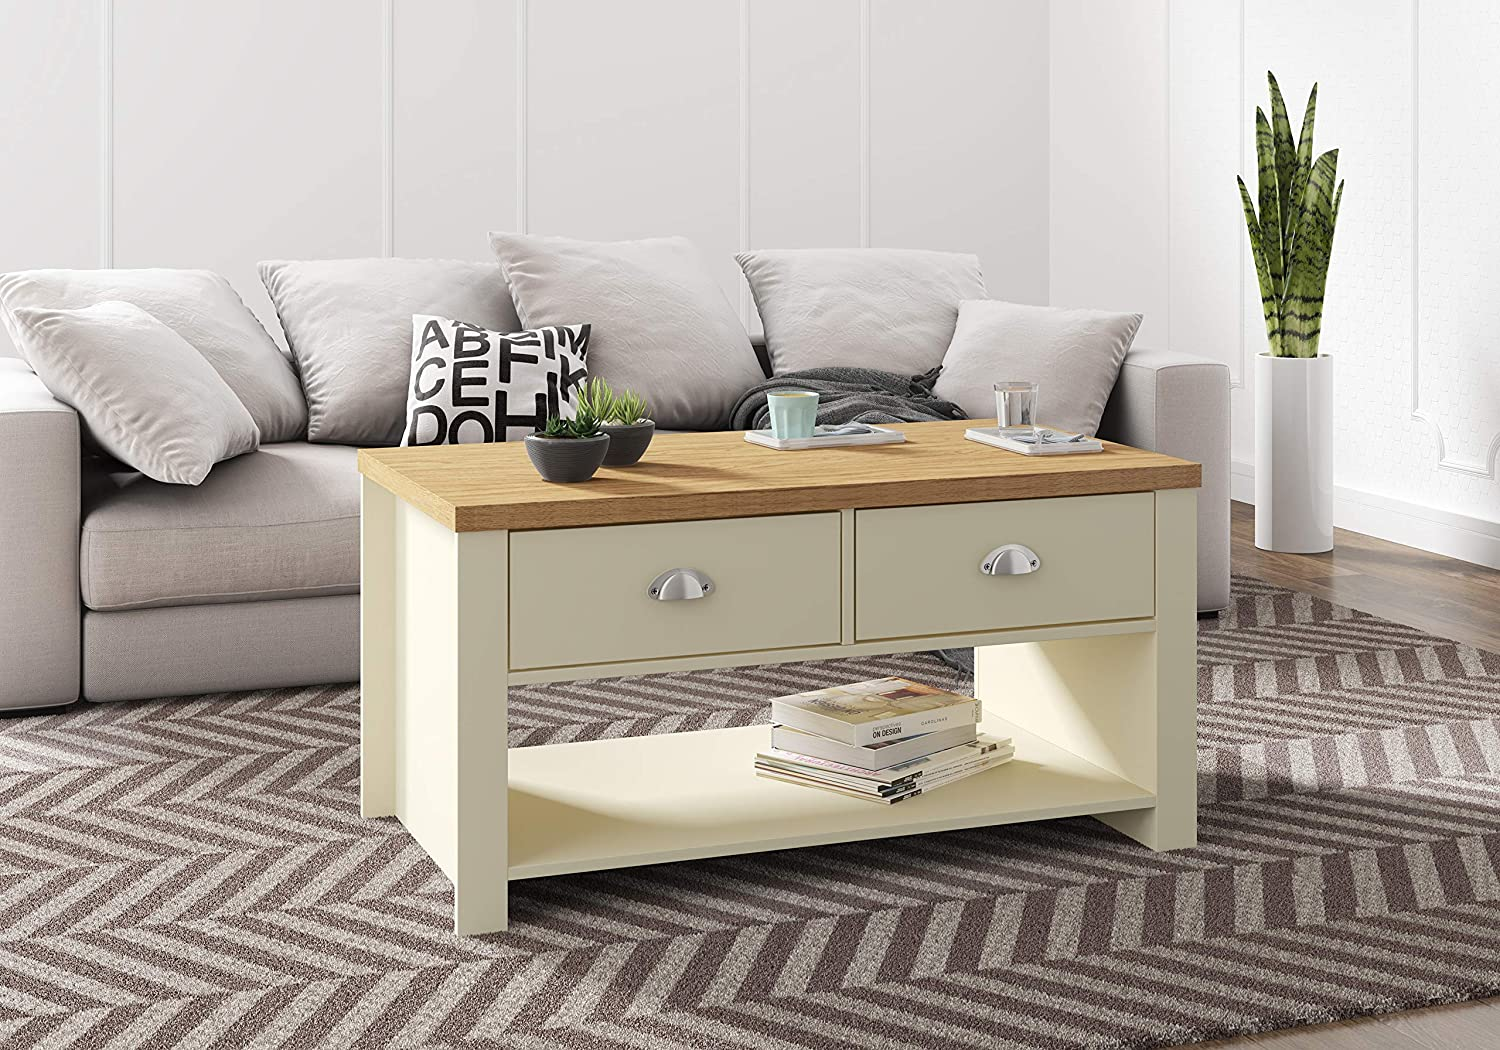 - Birlea, Winchester 2 Drawer Coffee Table, Cream & Oak Effect